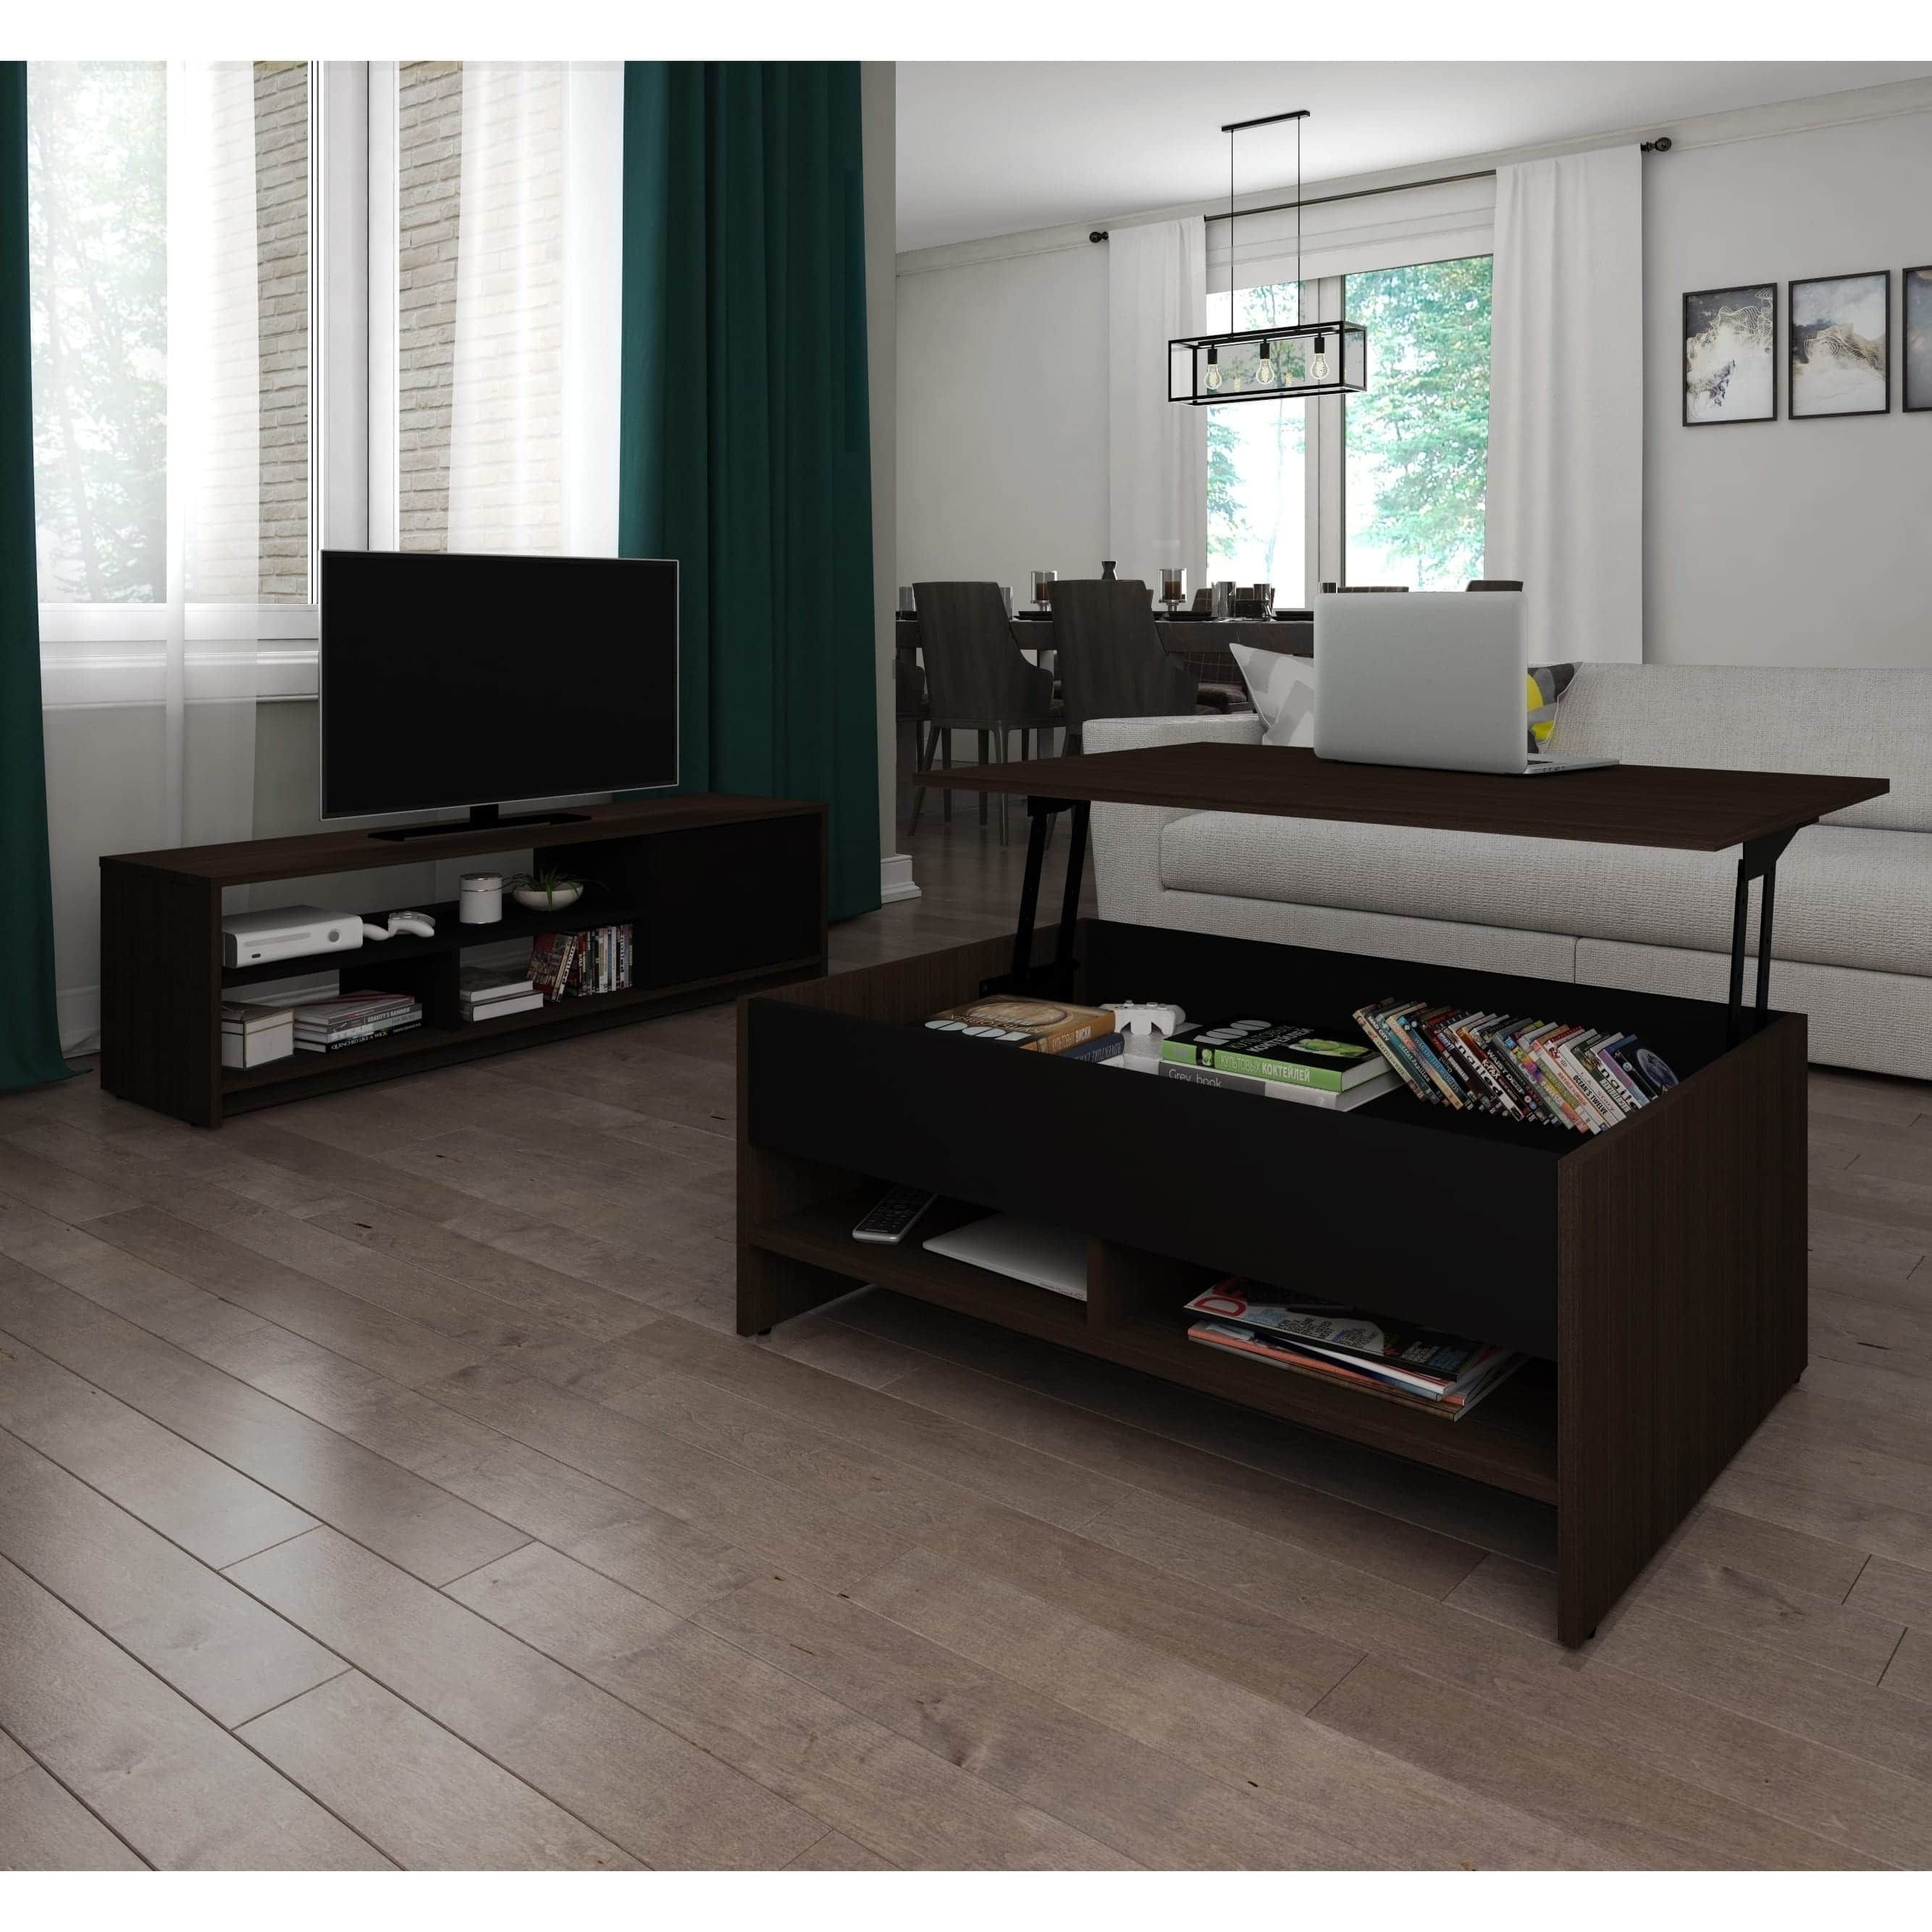 Bestar Small Space 2 Piece Lift Top Storage Coffee Table And Tv Stand Set Black Brown Finish Black Finish Products Coffee Table With Storage Tv Stand